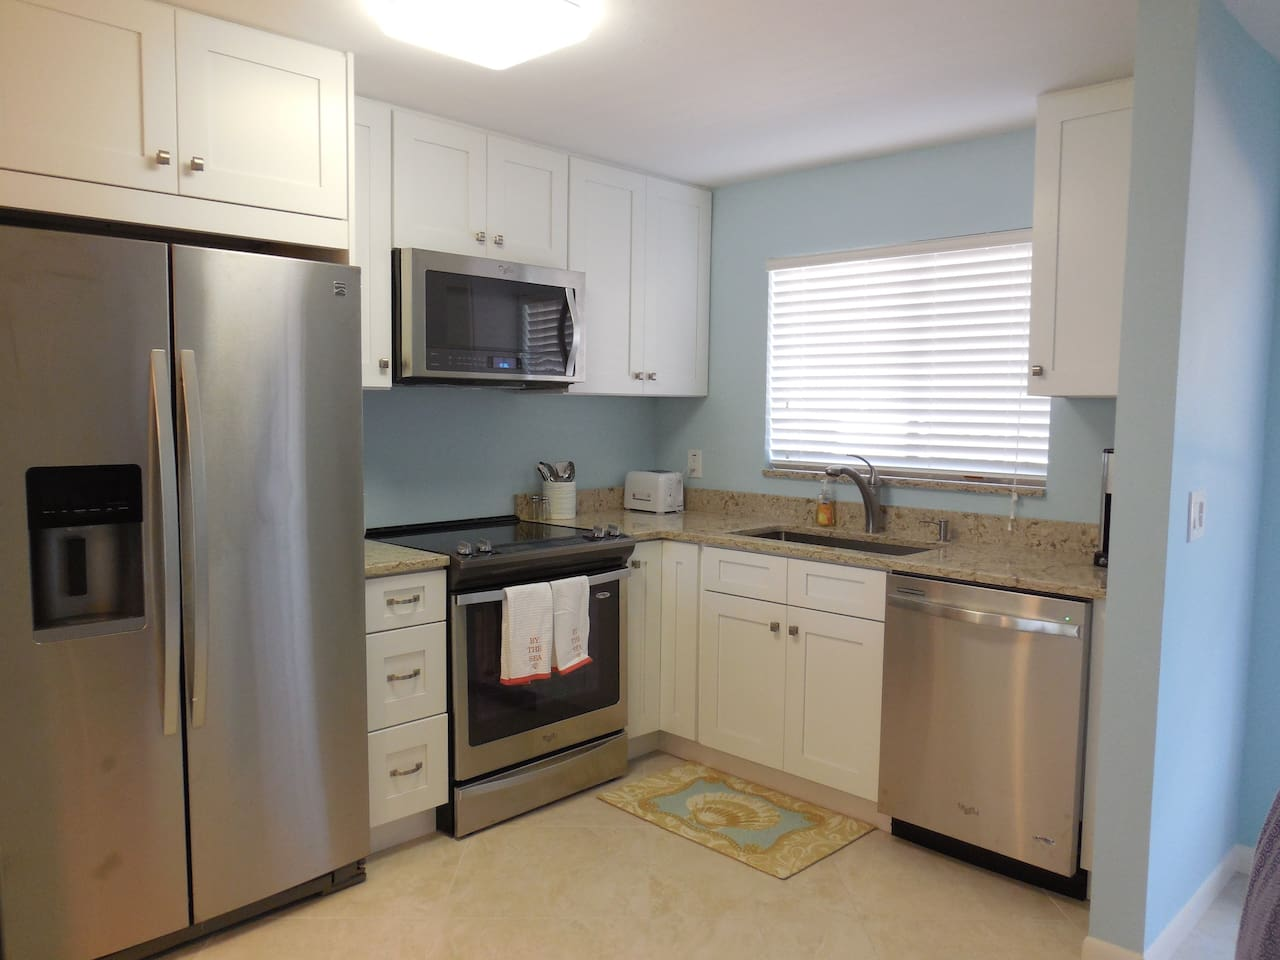 New remodeled kitchen with stainless appliances and granite counters